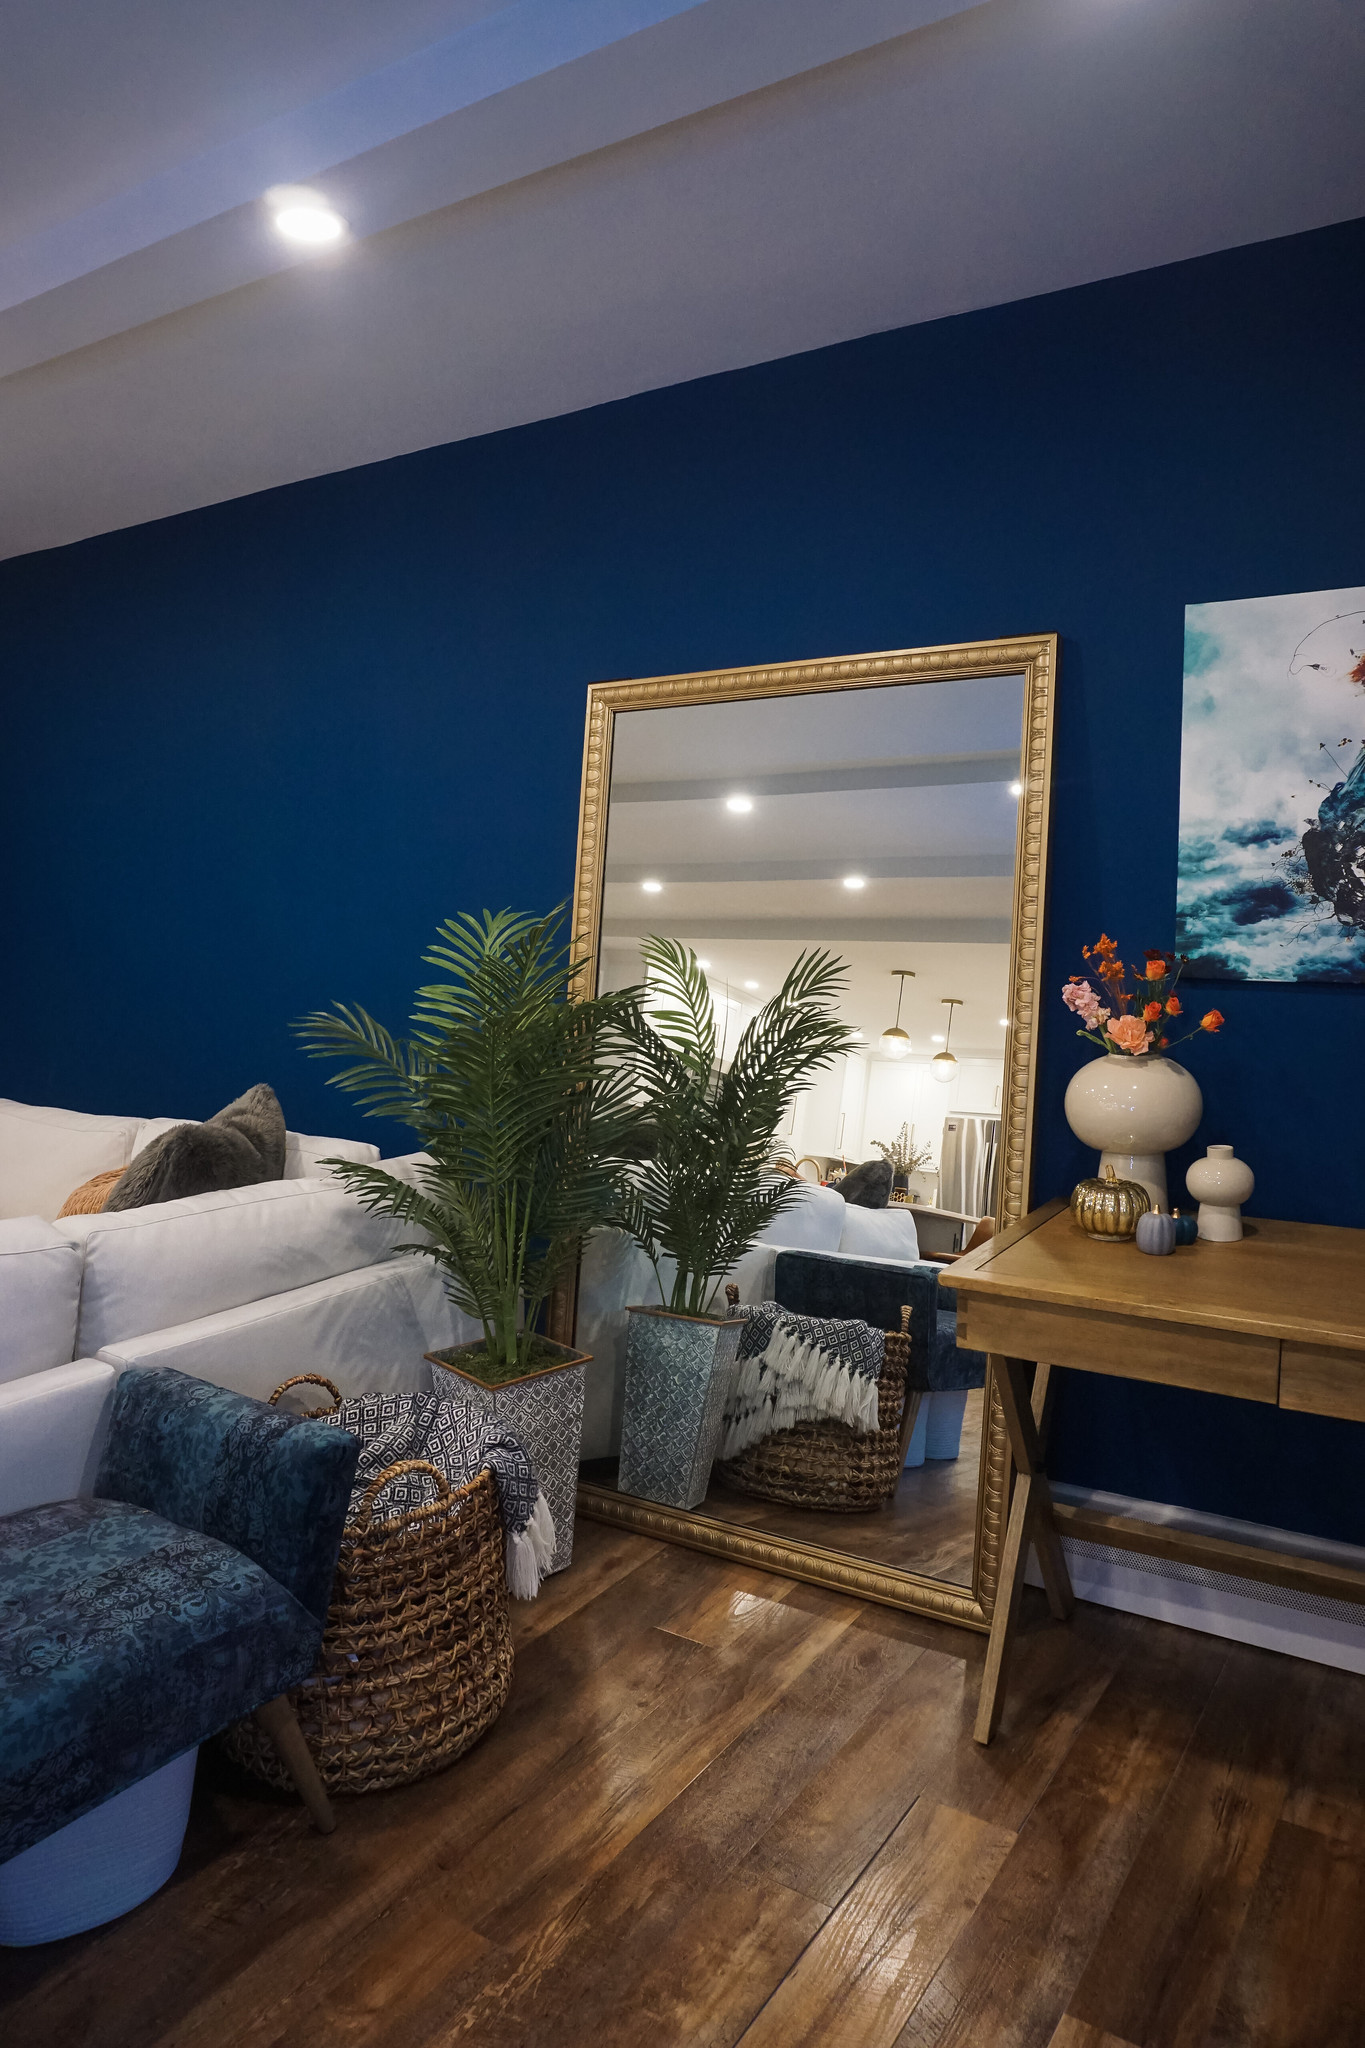 Gold Floor Length Mirror in Living Room | Blue Accent Wall | Subtle Fall Decorations